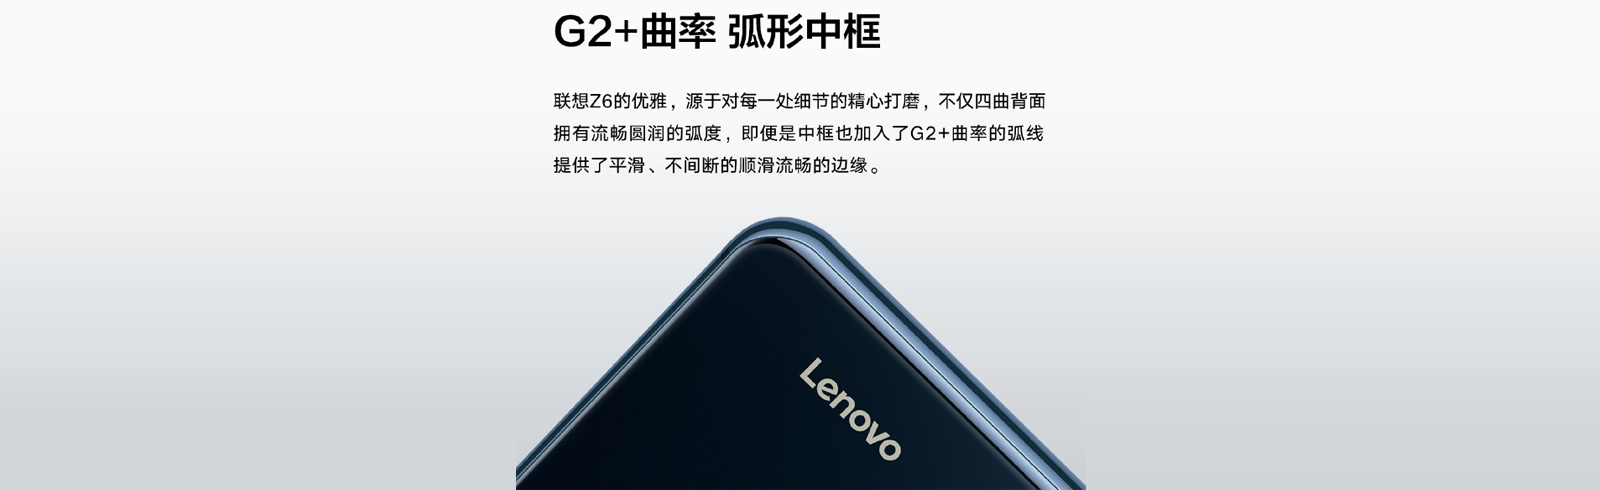 Lenovo Z6 details leaked prior to announcement